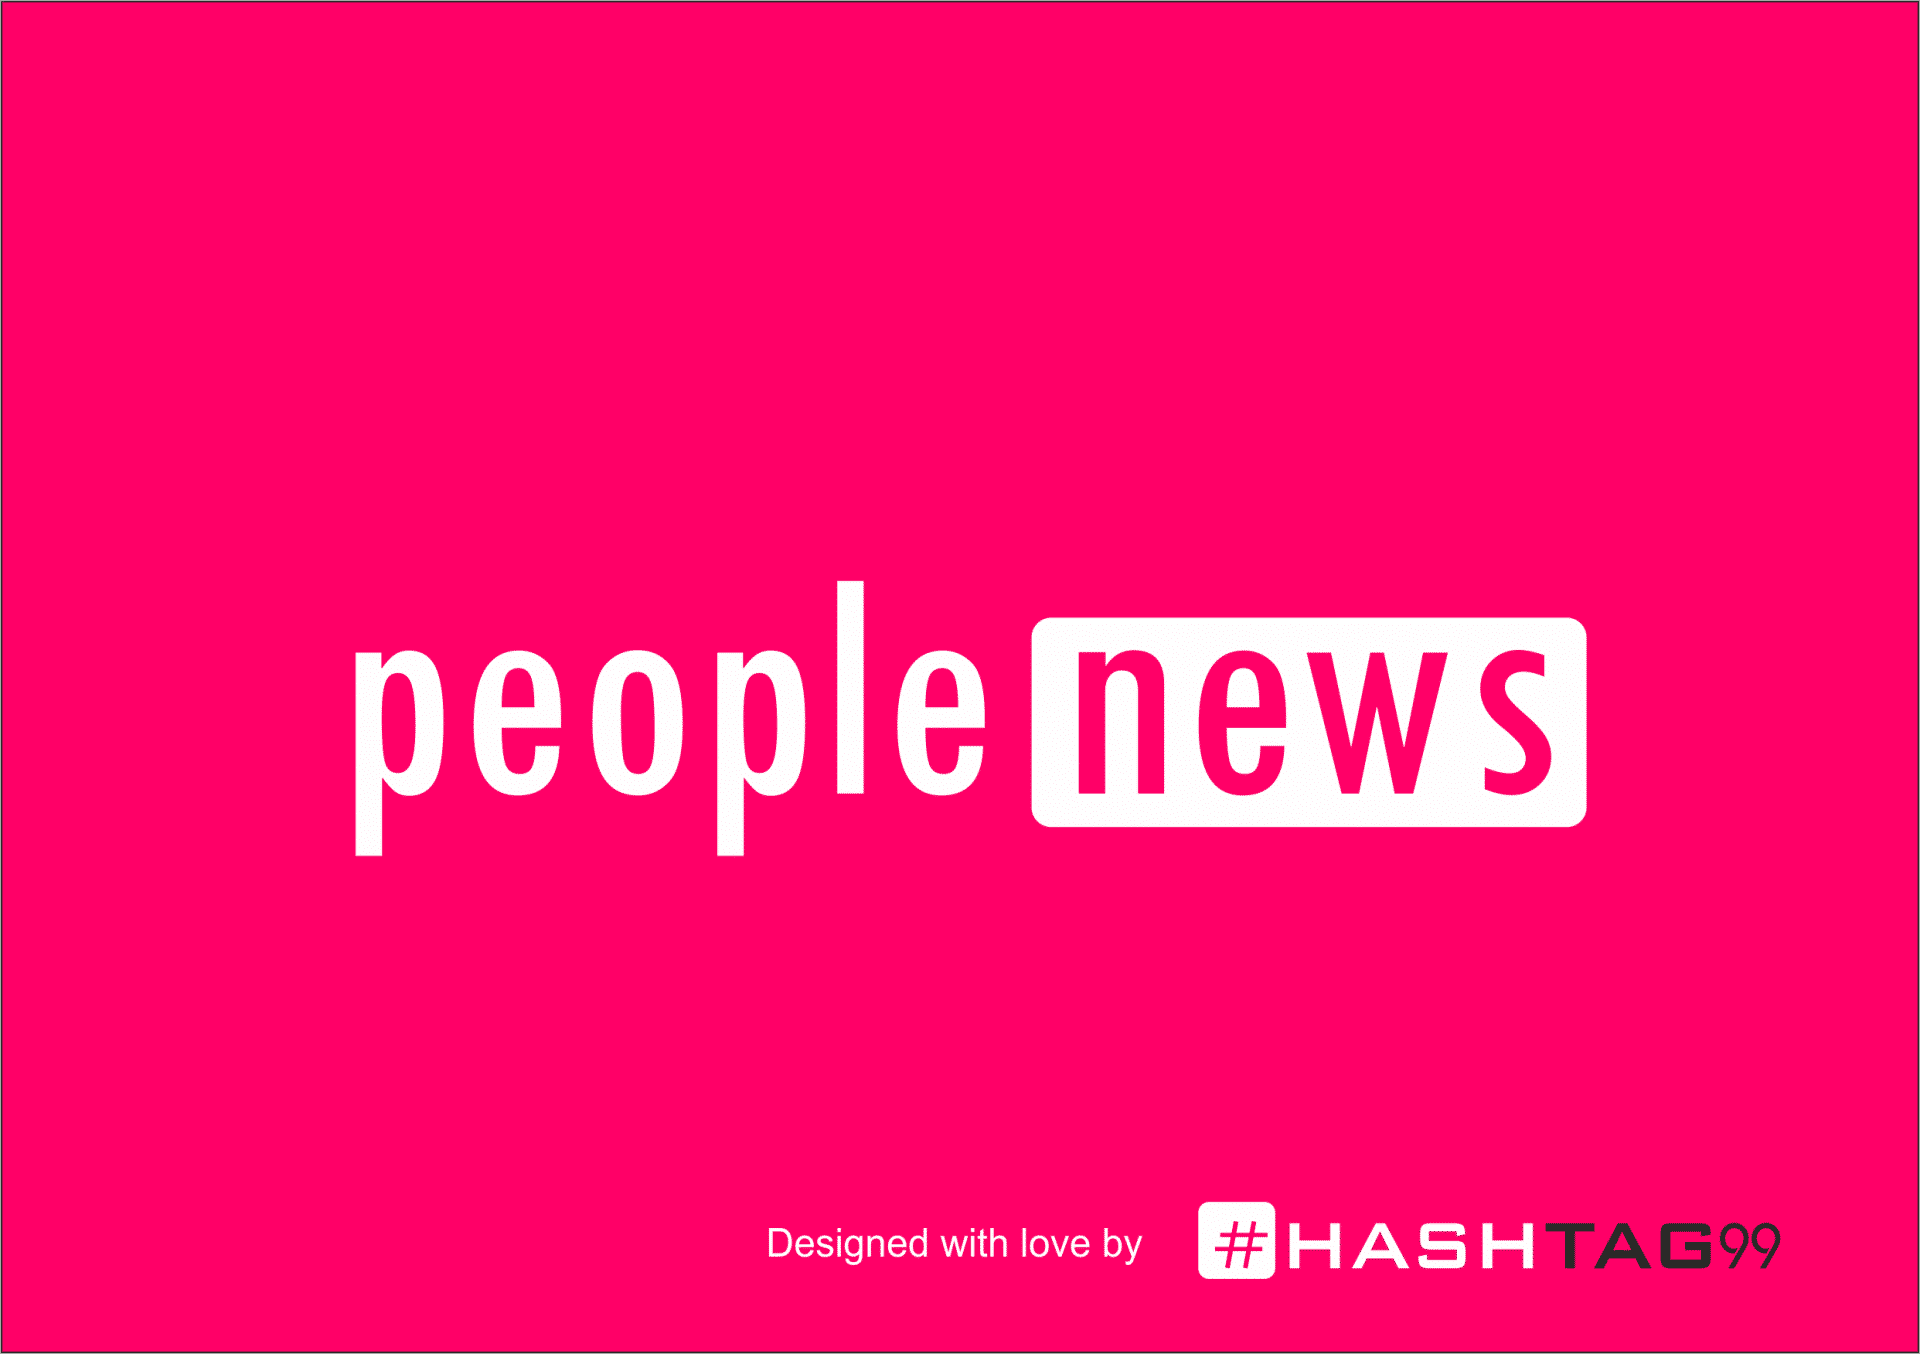 People news logo design red